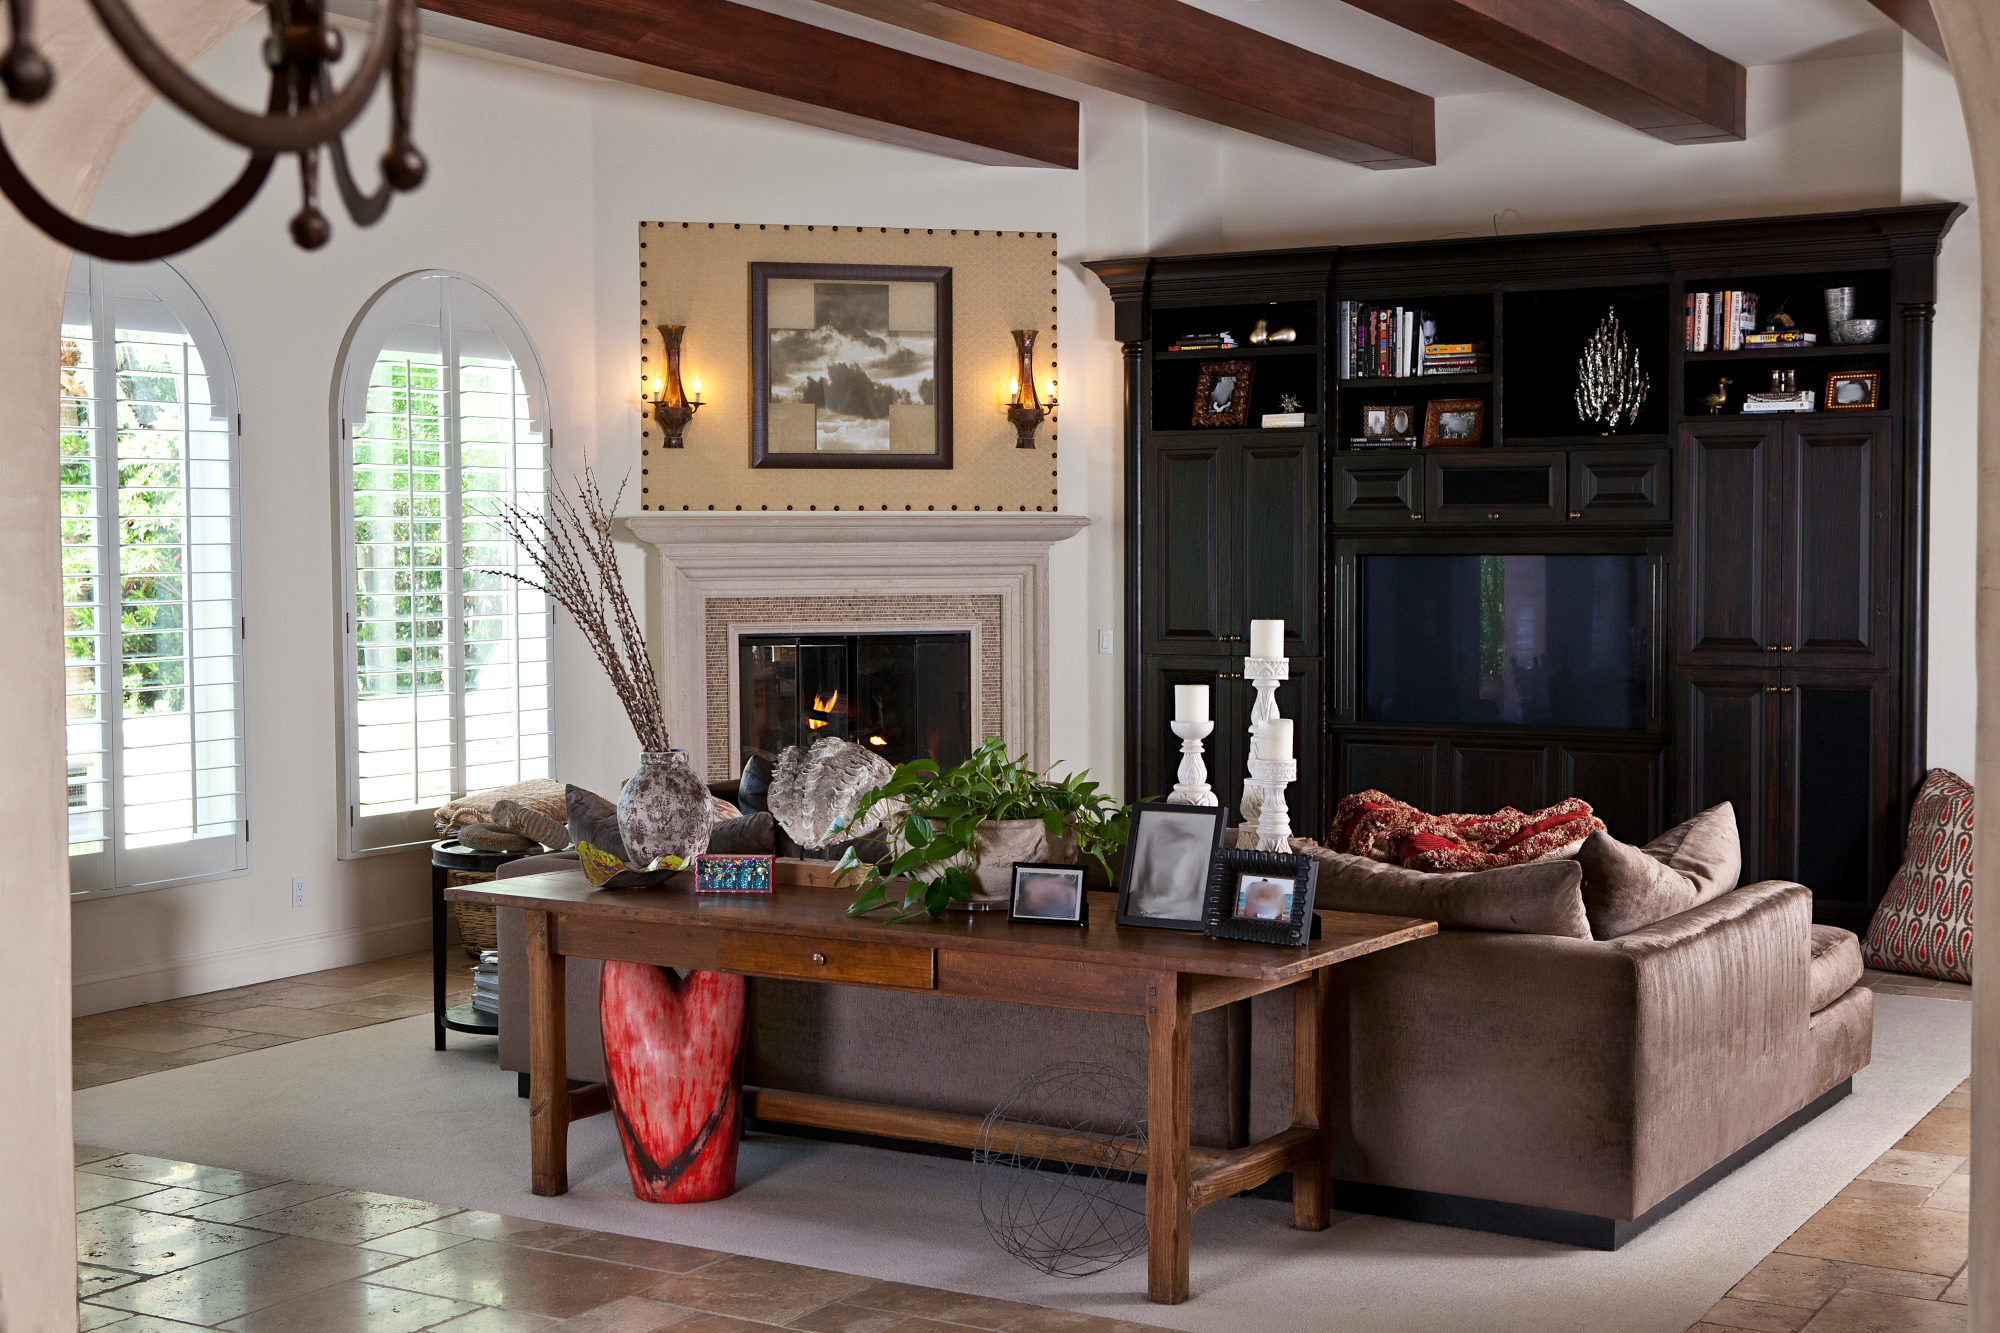 Spanish style family room with wood beams and custom stone fireplace.